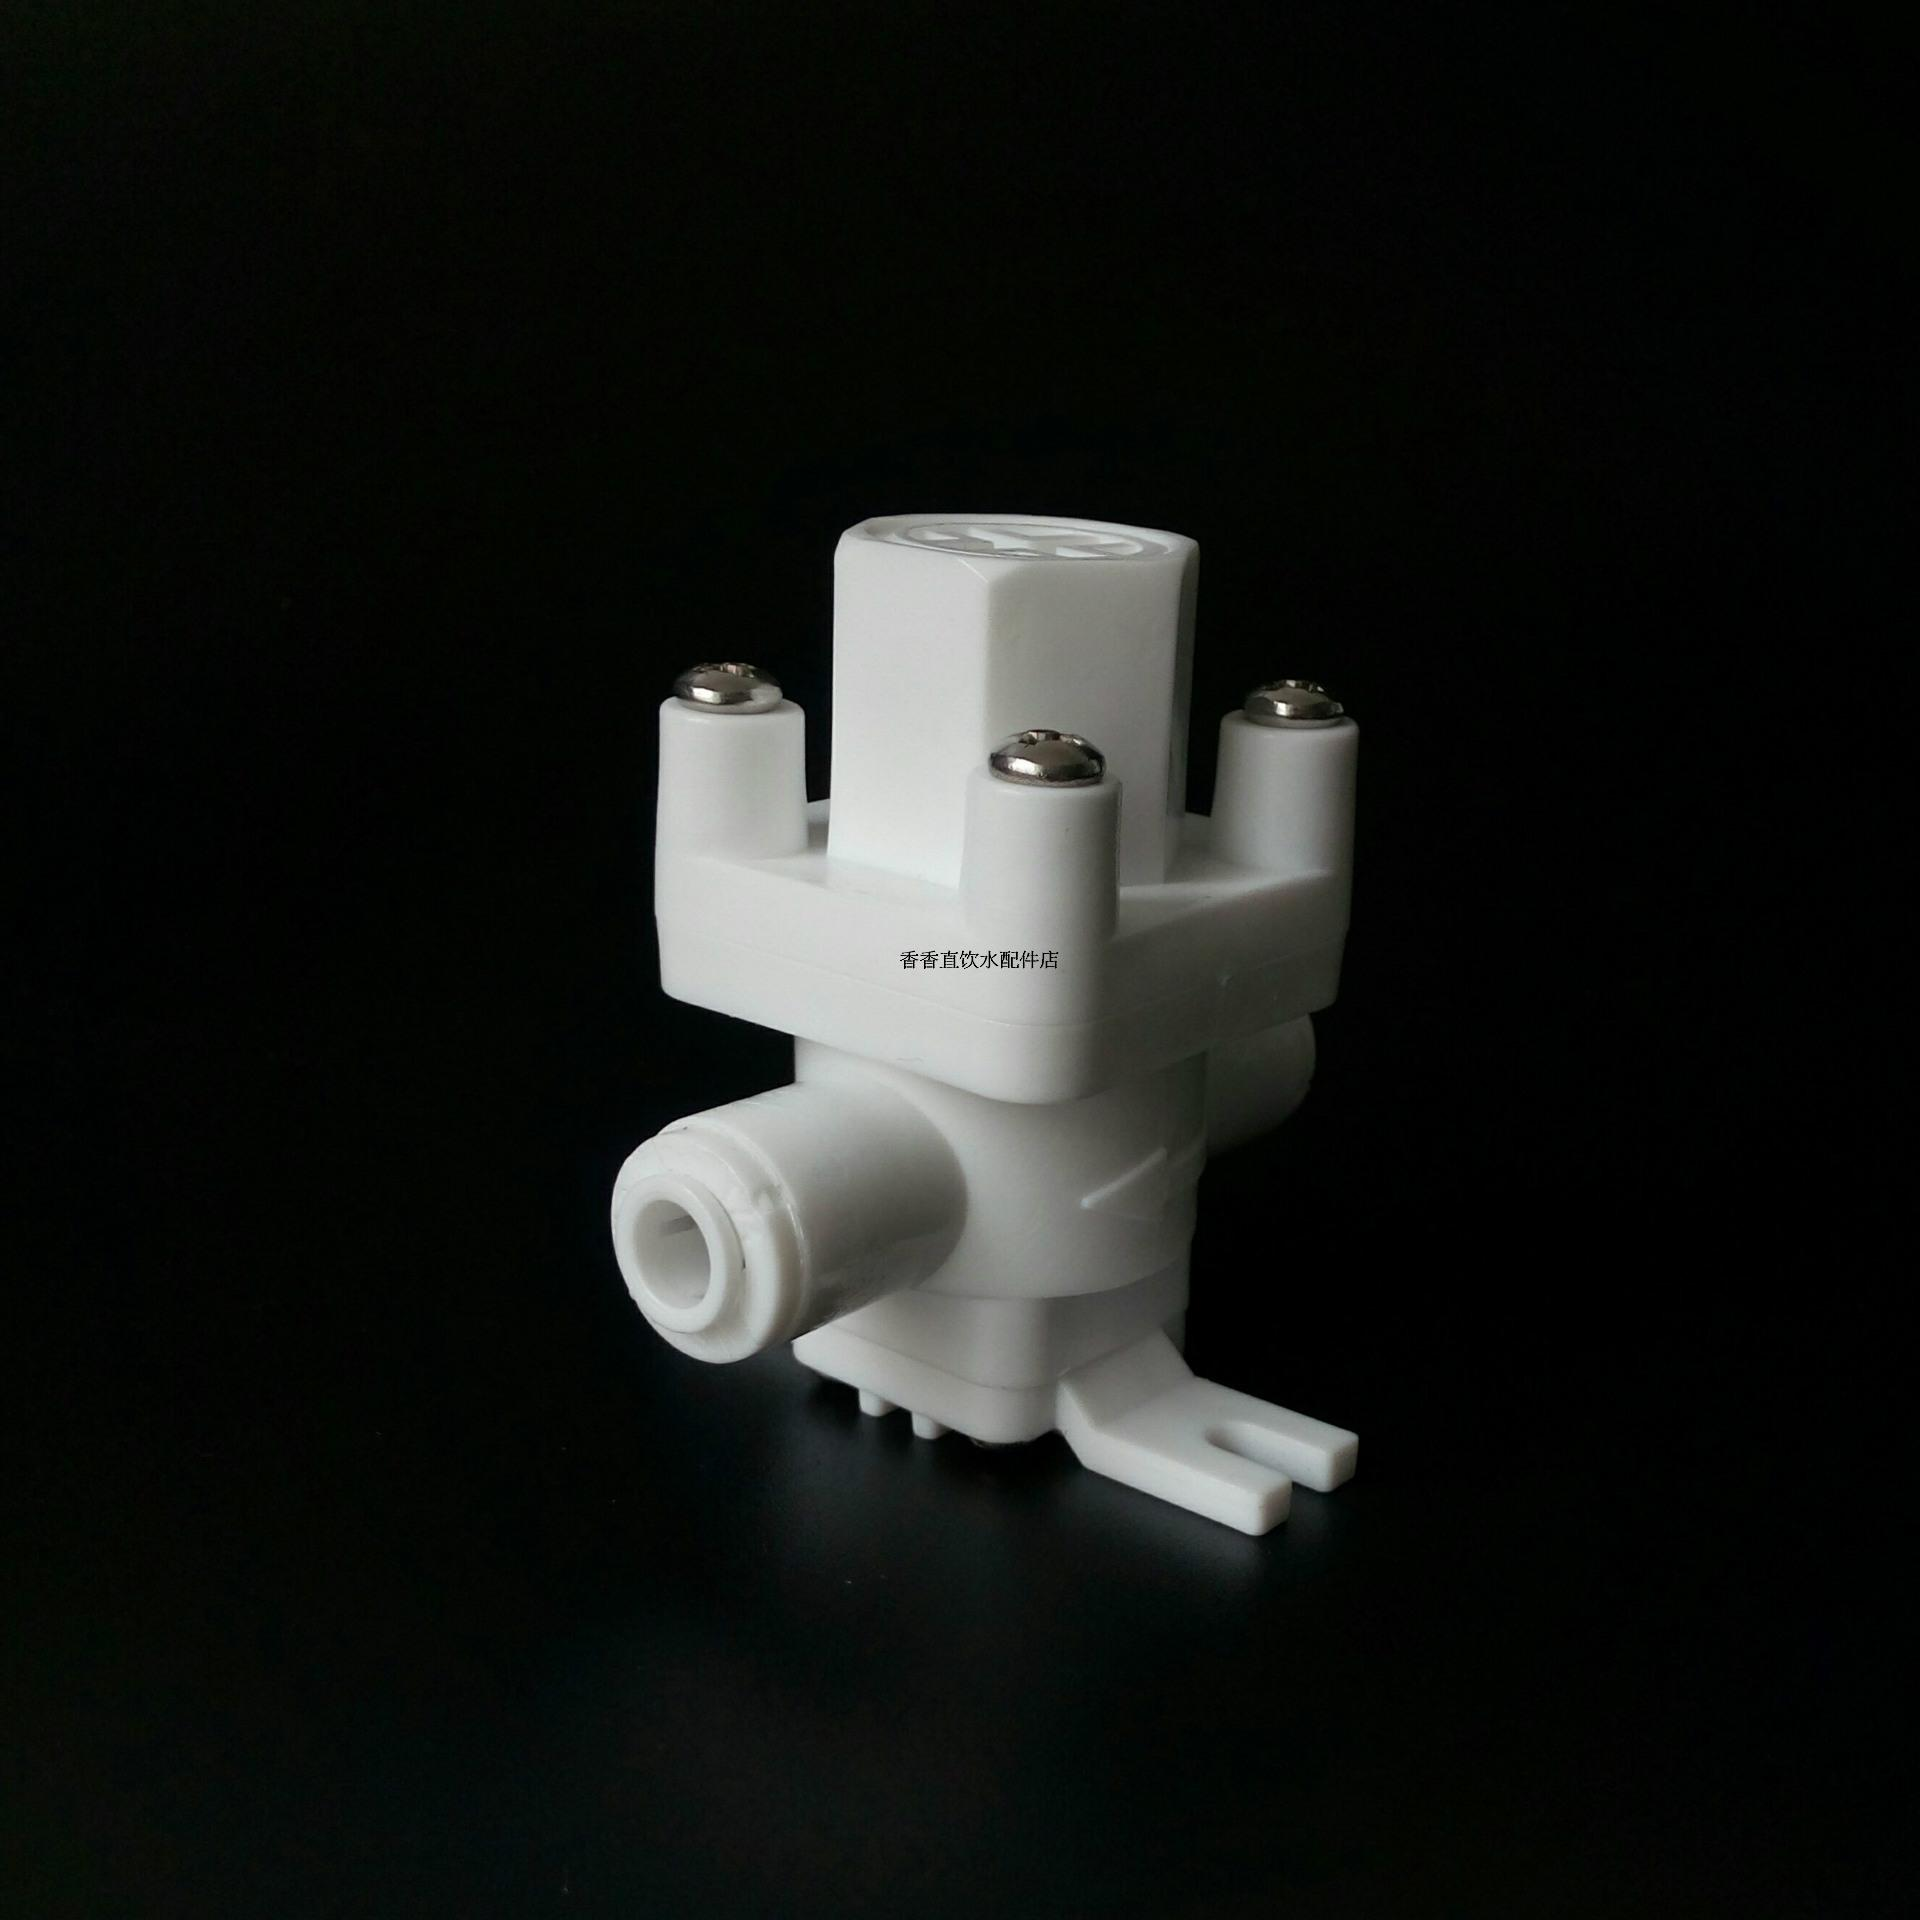 2 point quick closing pressure reducing valve, water purifier, reducing valve, reducing water pressure artifact